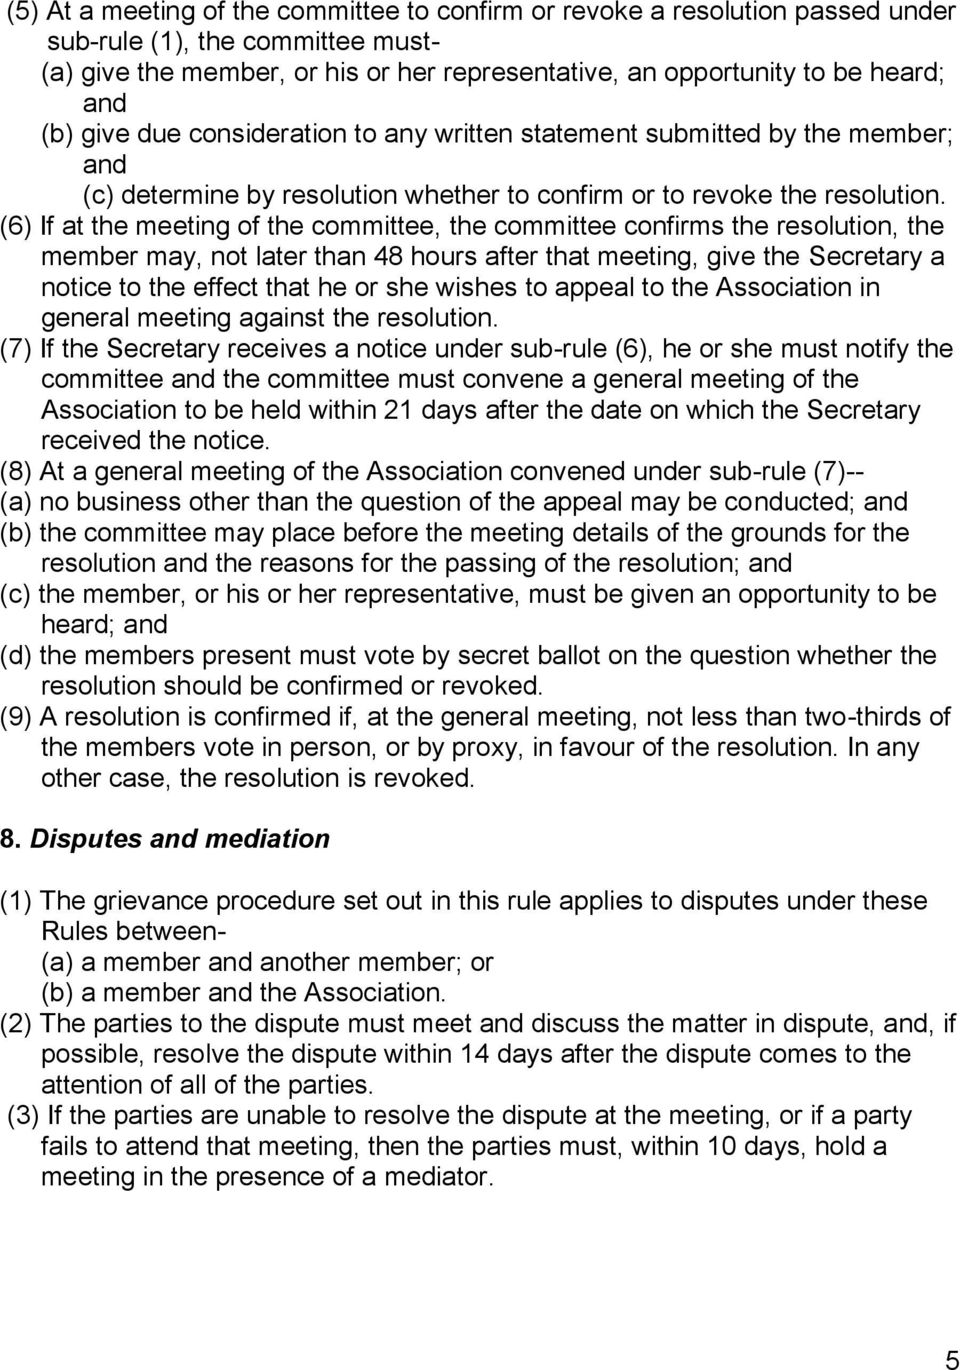 (6) If at the meeting of the committee, the committee confirms the resolution, the member may, not later than 48 hours after that meeting, give the Secretary a notice to the effect that he or she